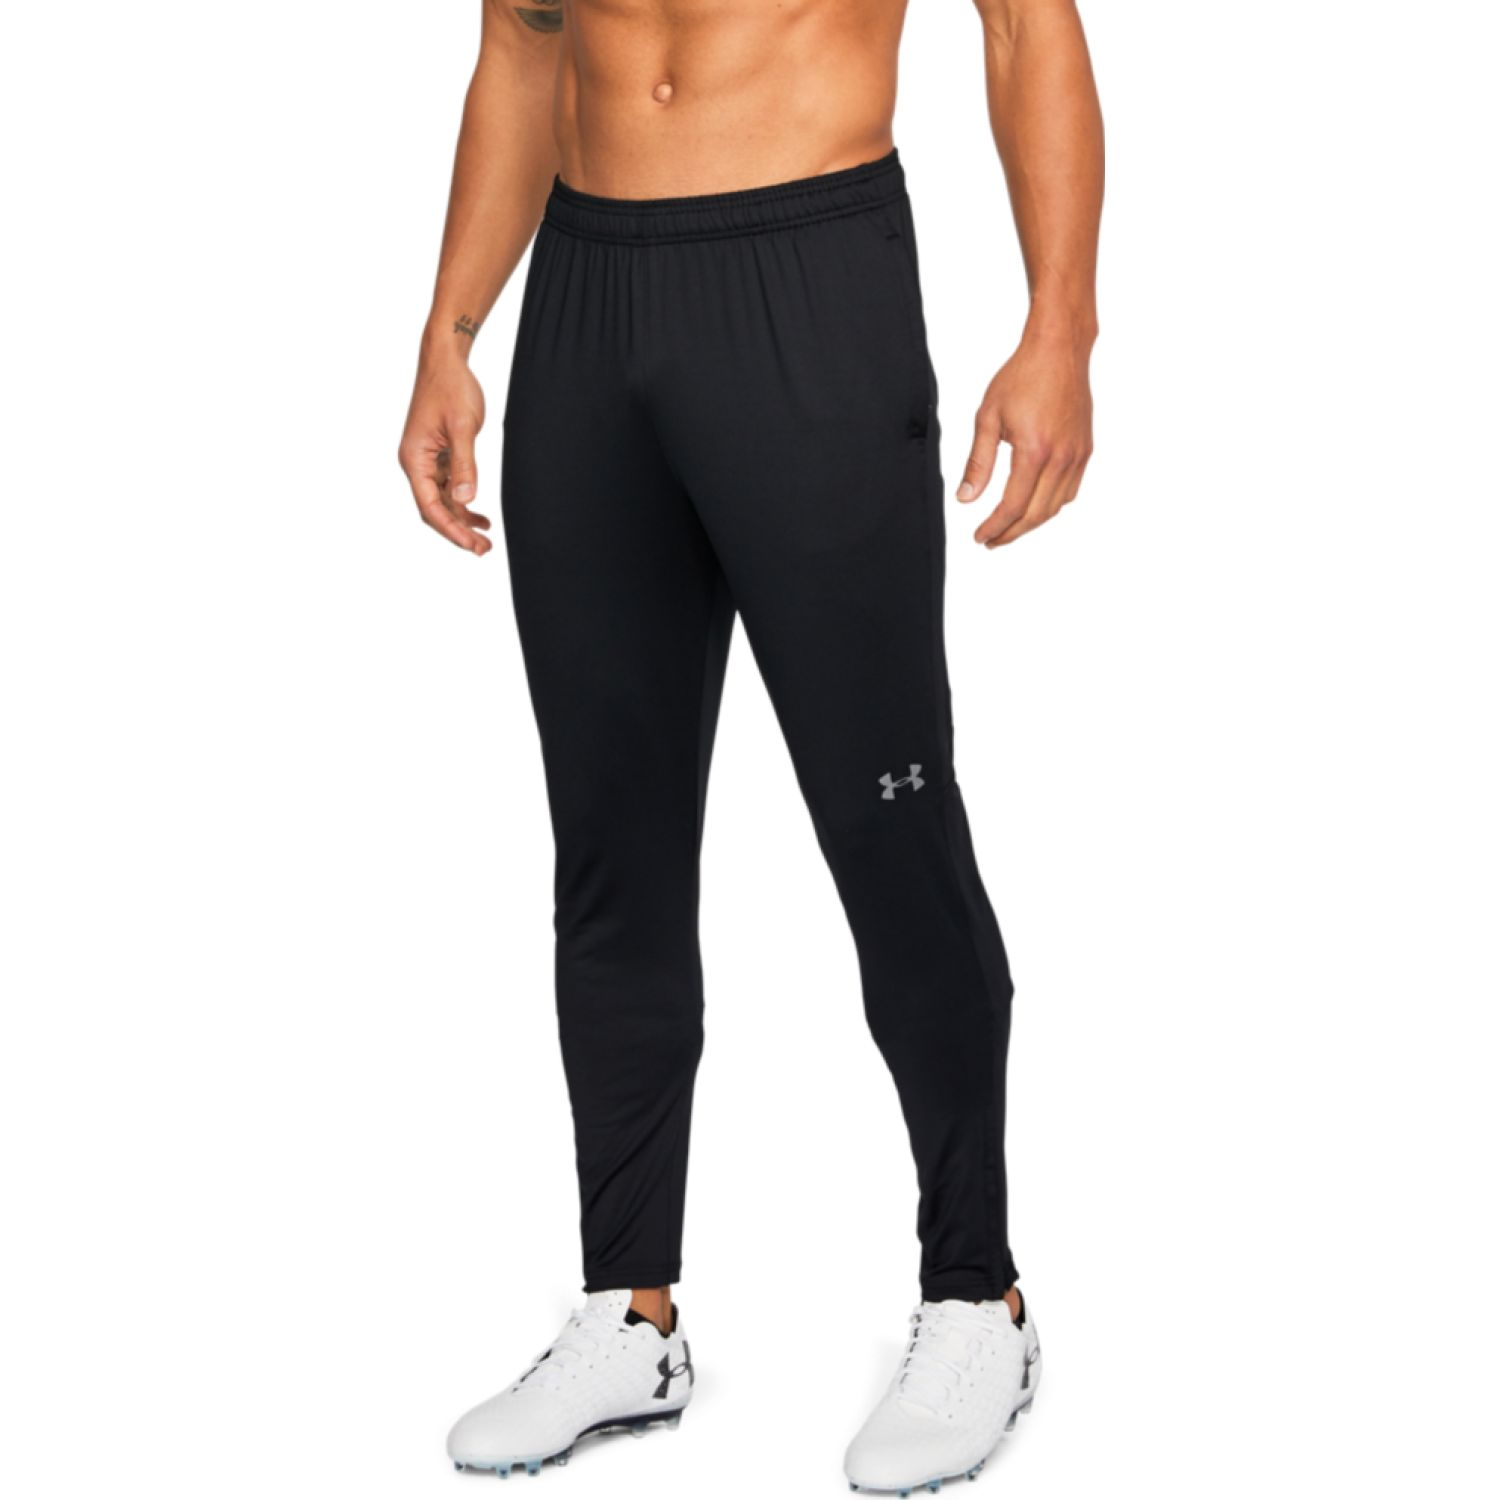 Under Armour challenger ii training pant Negro Pantalones Deportivos